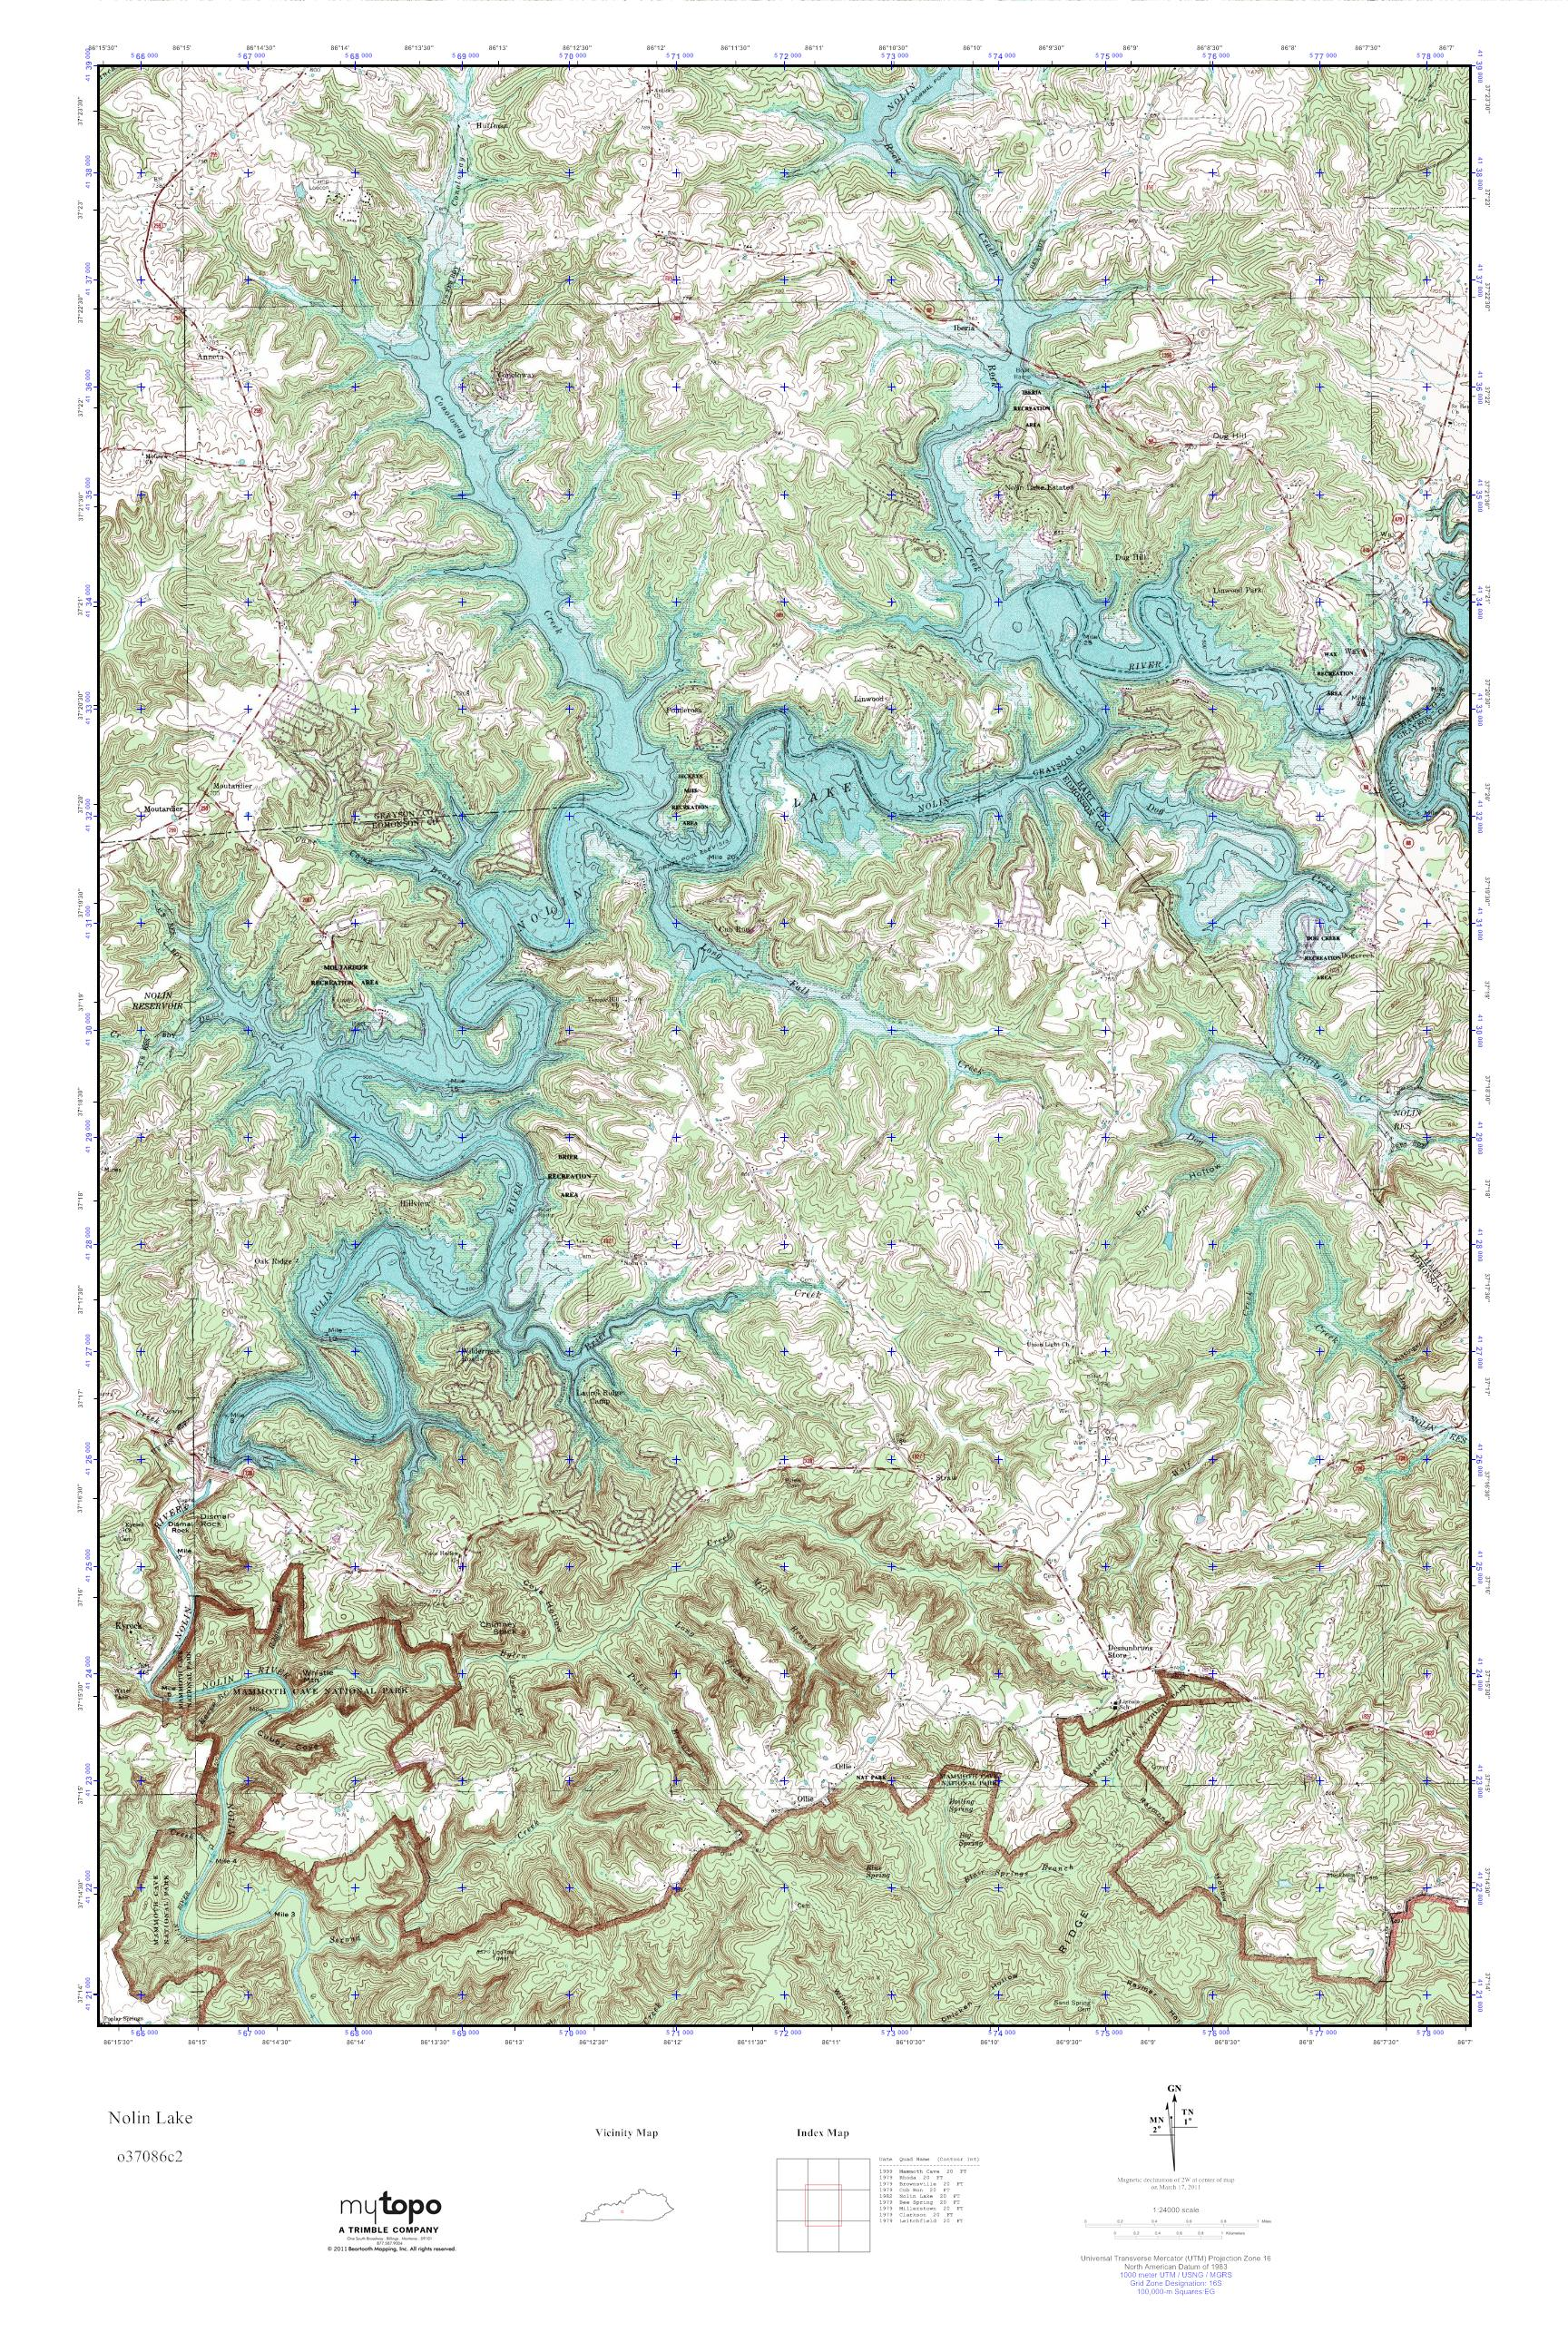 . mytopo nolin lake kentucky usgs quad topo map